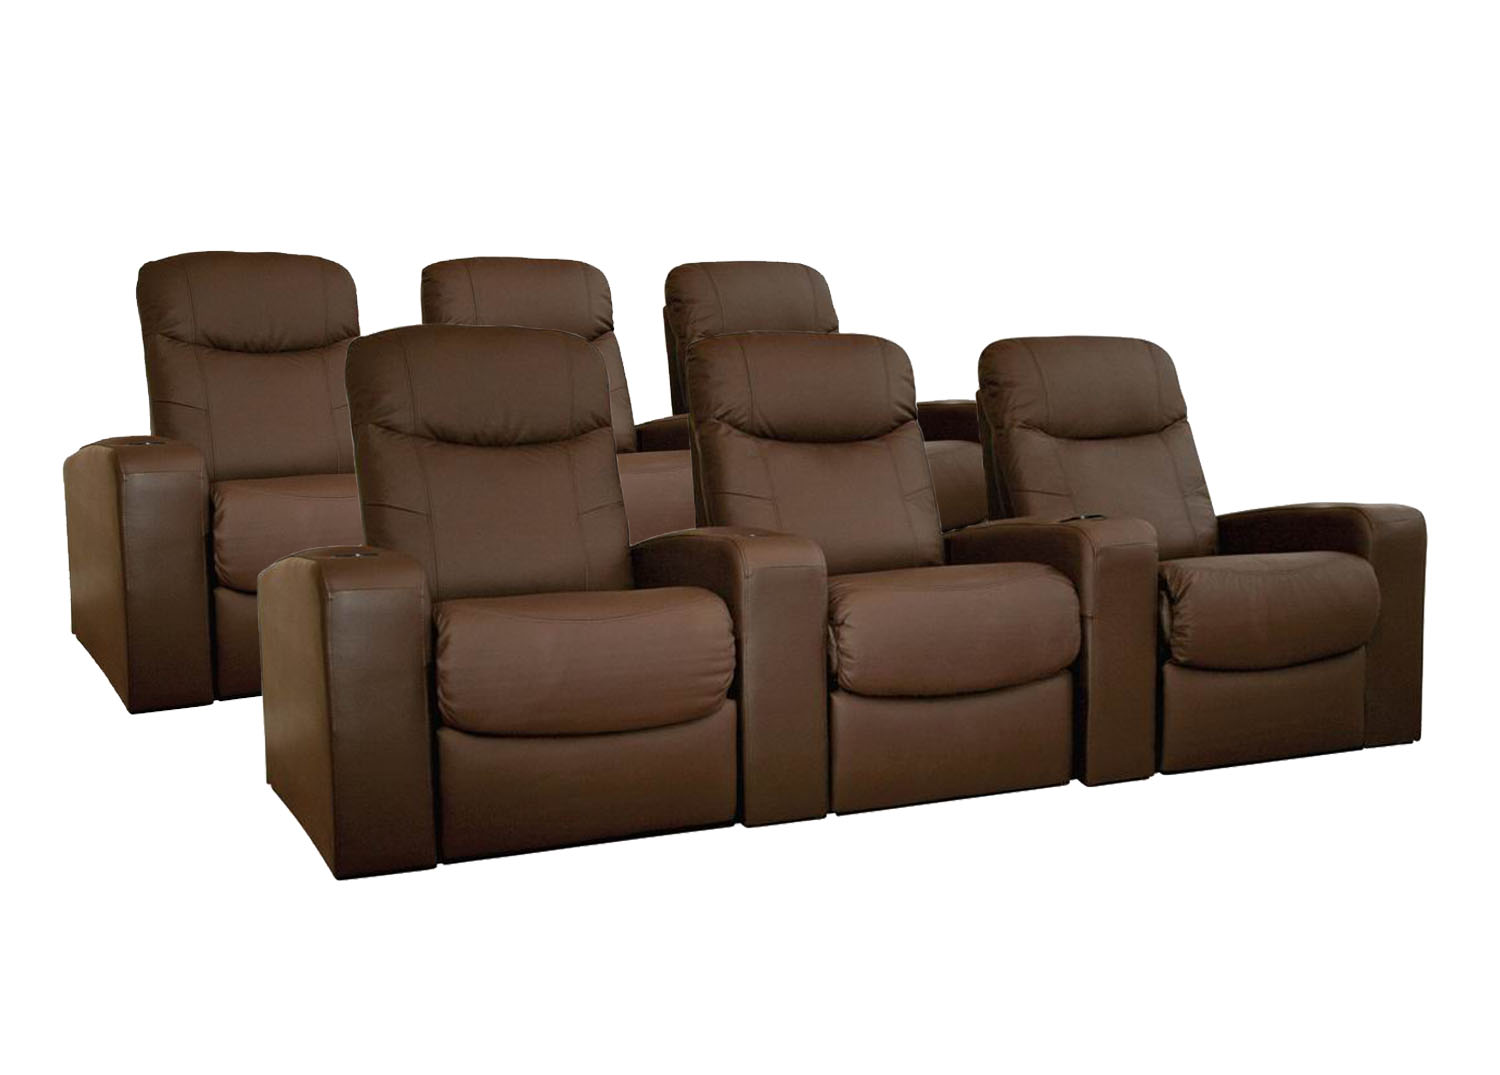 theater recliner chairs loveseat and chair leather home seating 6 brown cannes recliners